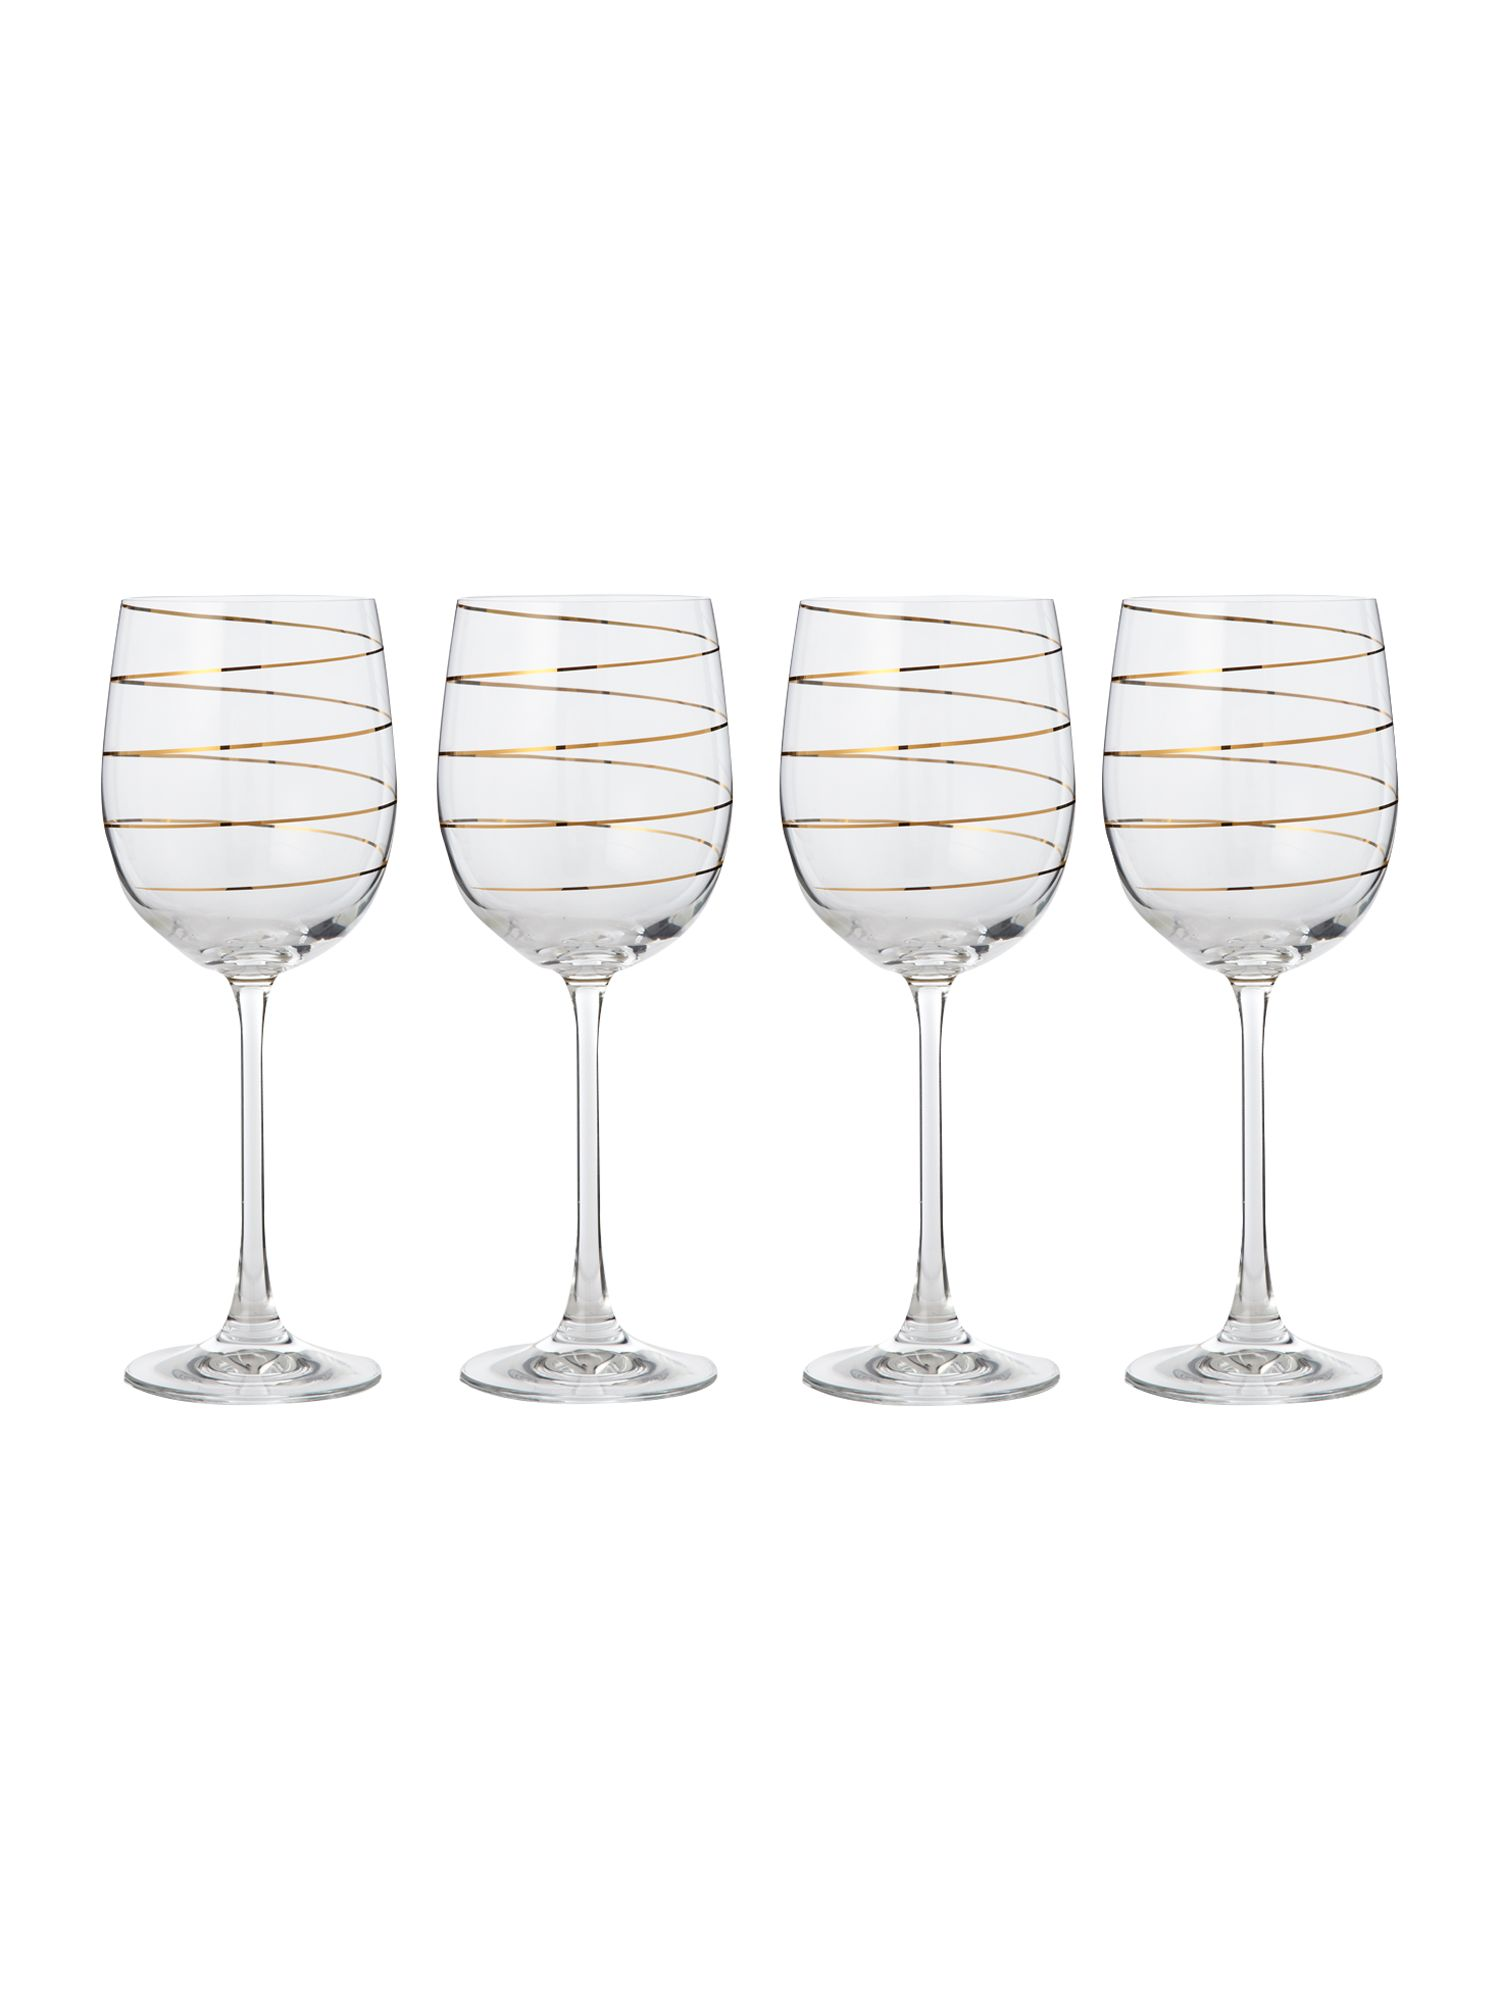 Gold spiral wine glasses set of 4